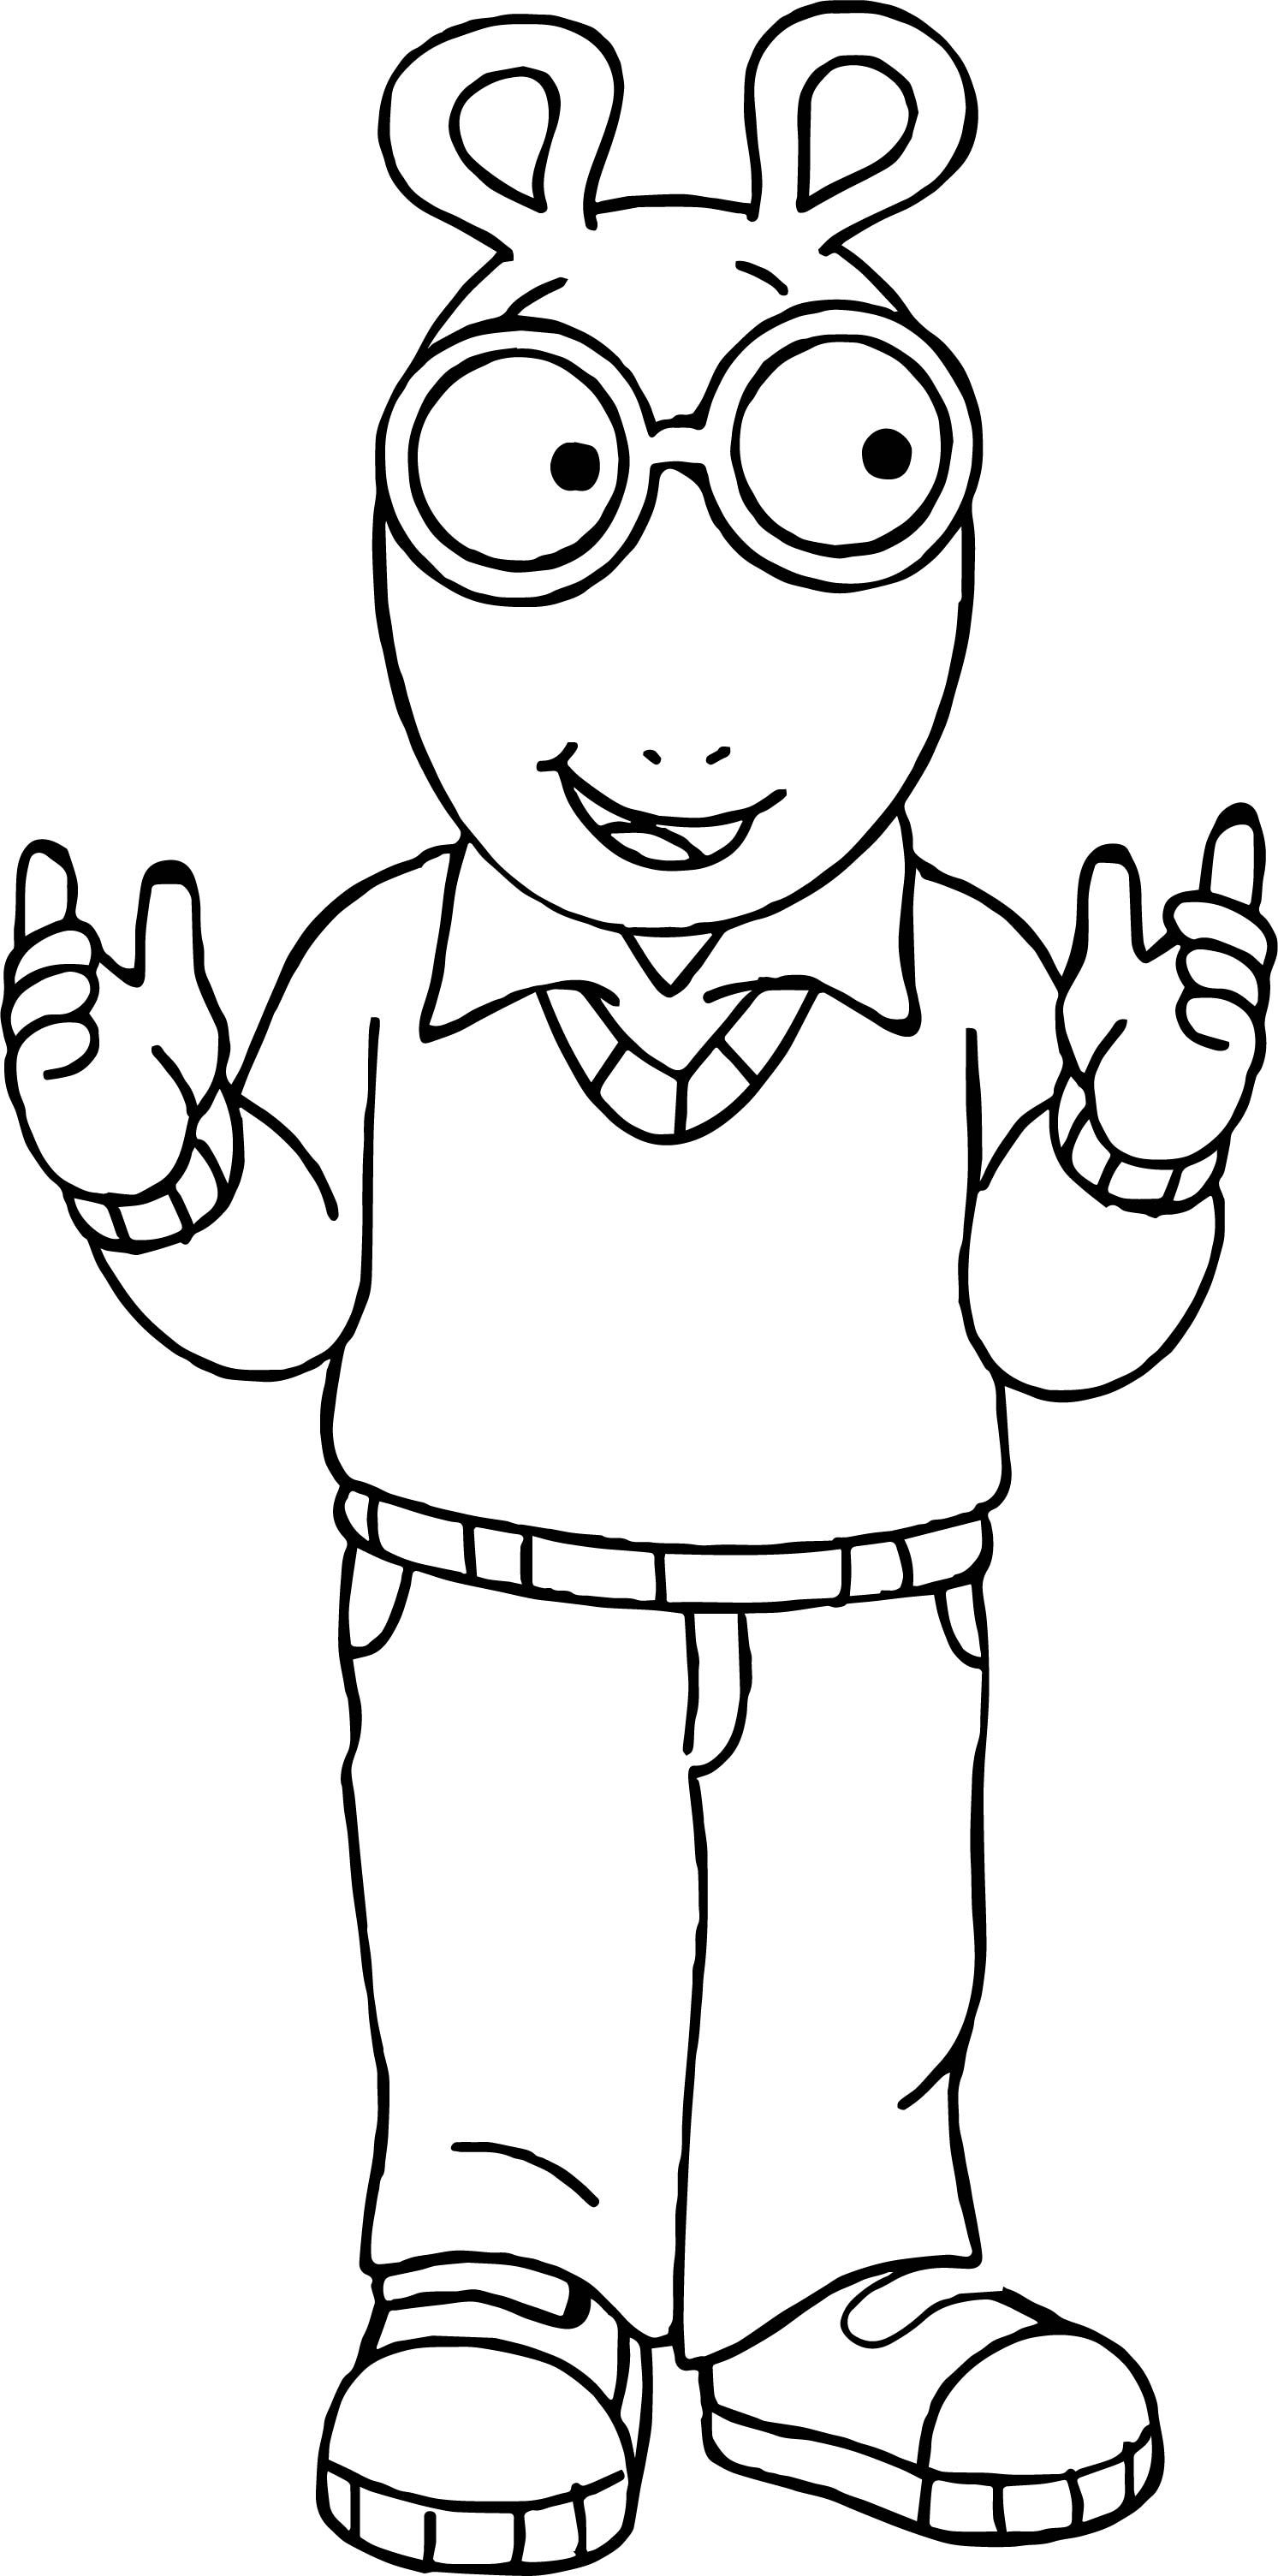 arthur coloring pages arthur coloring pages to download and print for free arthur coloring pages